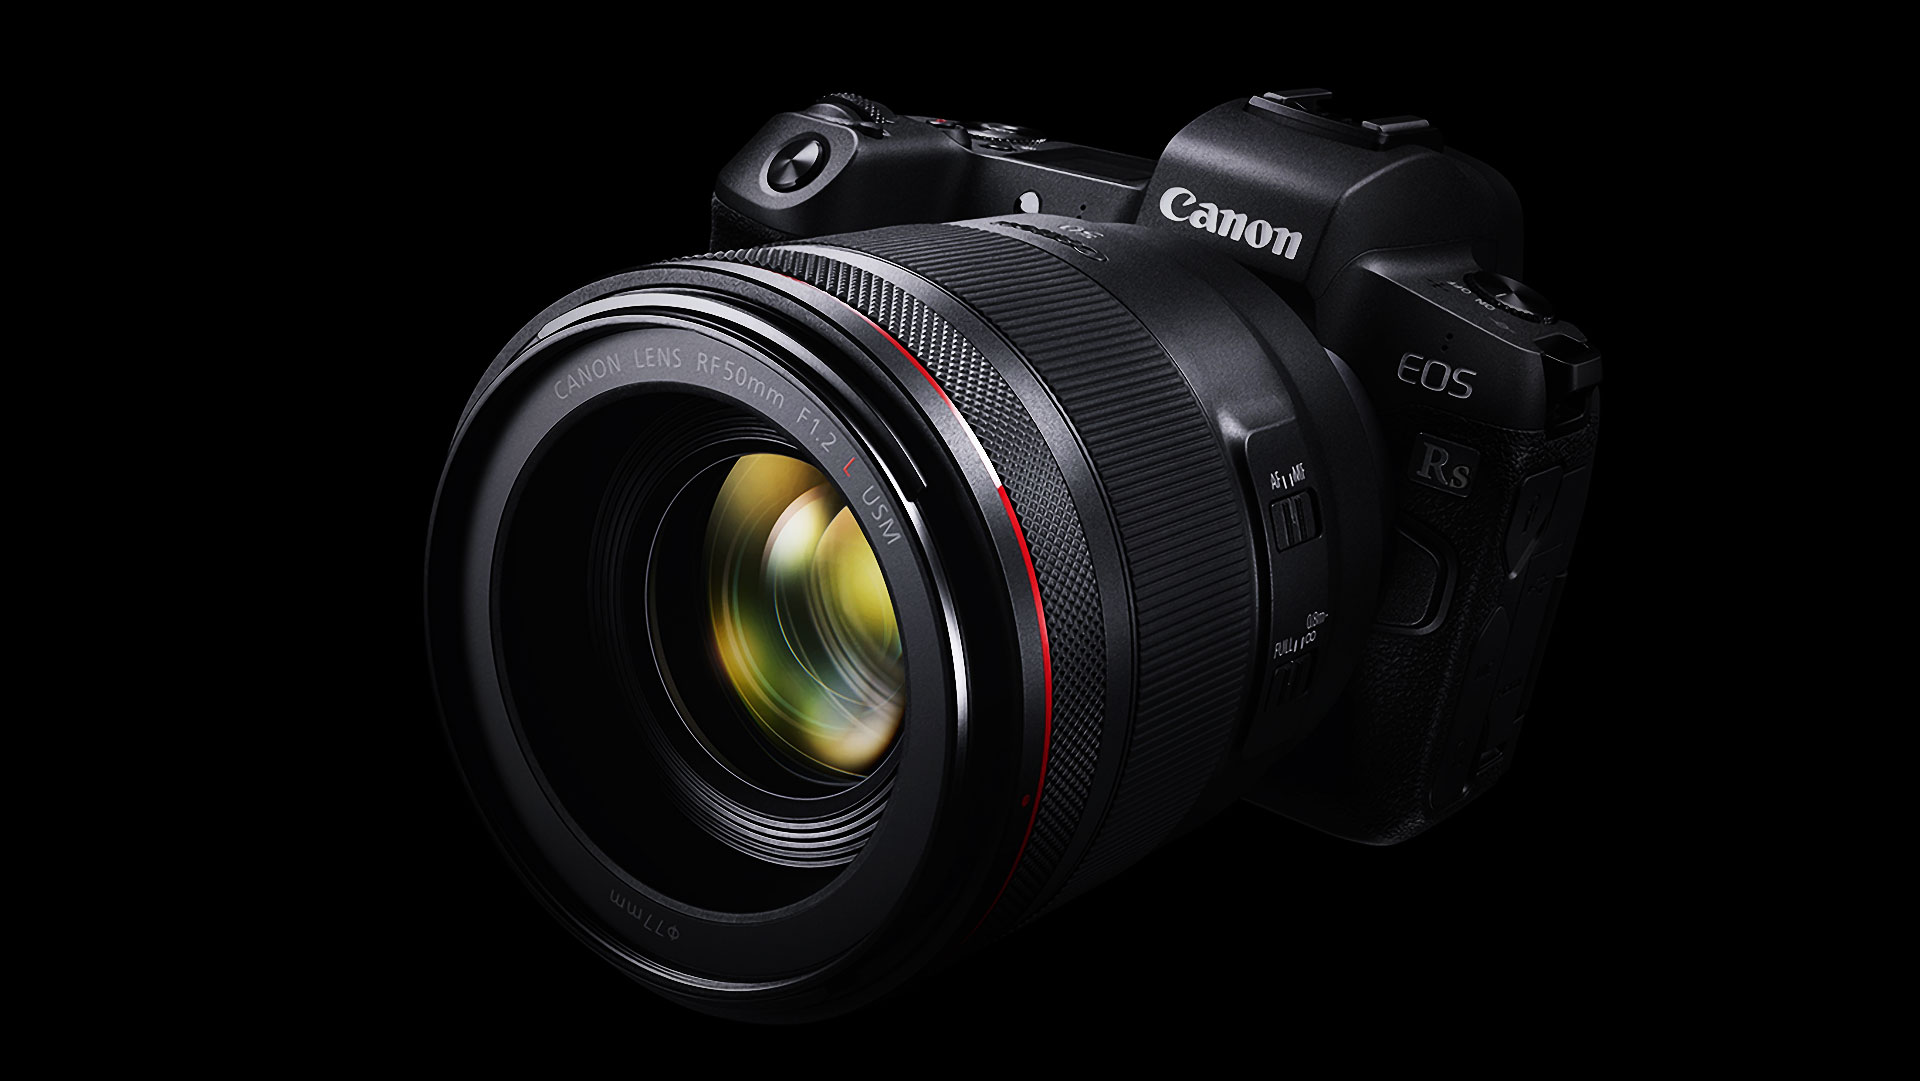 Canon EOS RS specs leaked? 80MP, dual SD cards, new joystick | Digital Camera World